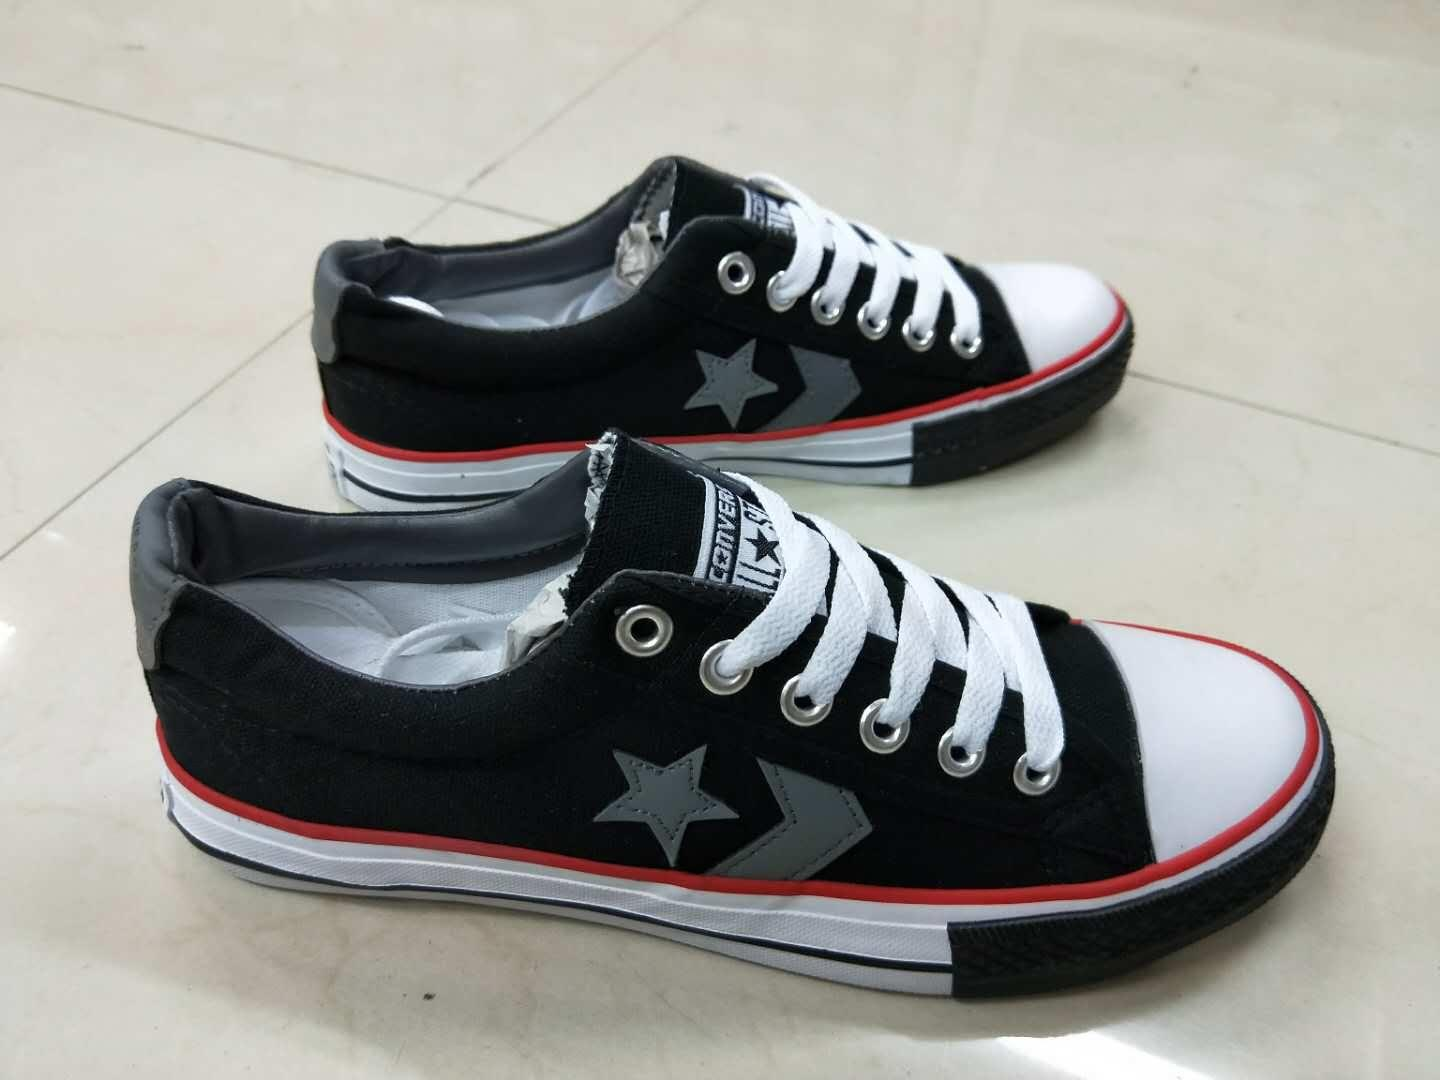 c16c68f1f65d Converse Philippines  Converse price list - Shoes for Men   Women ...